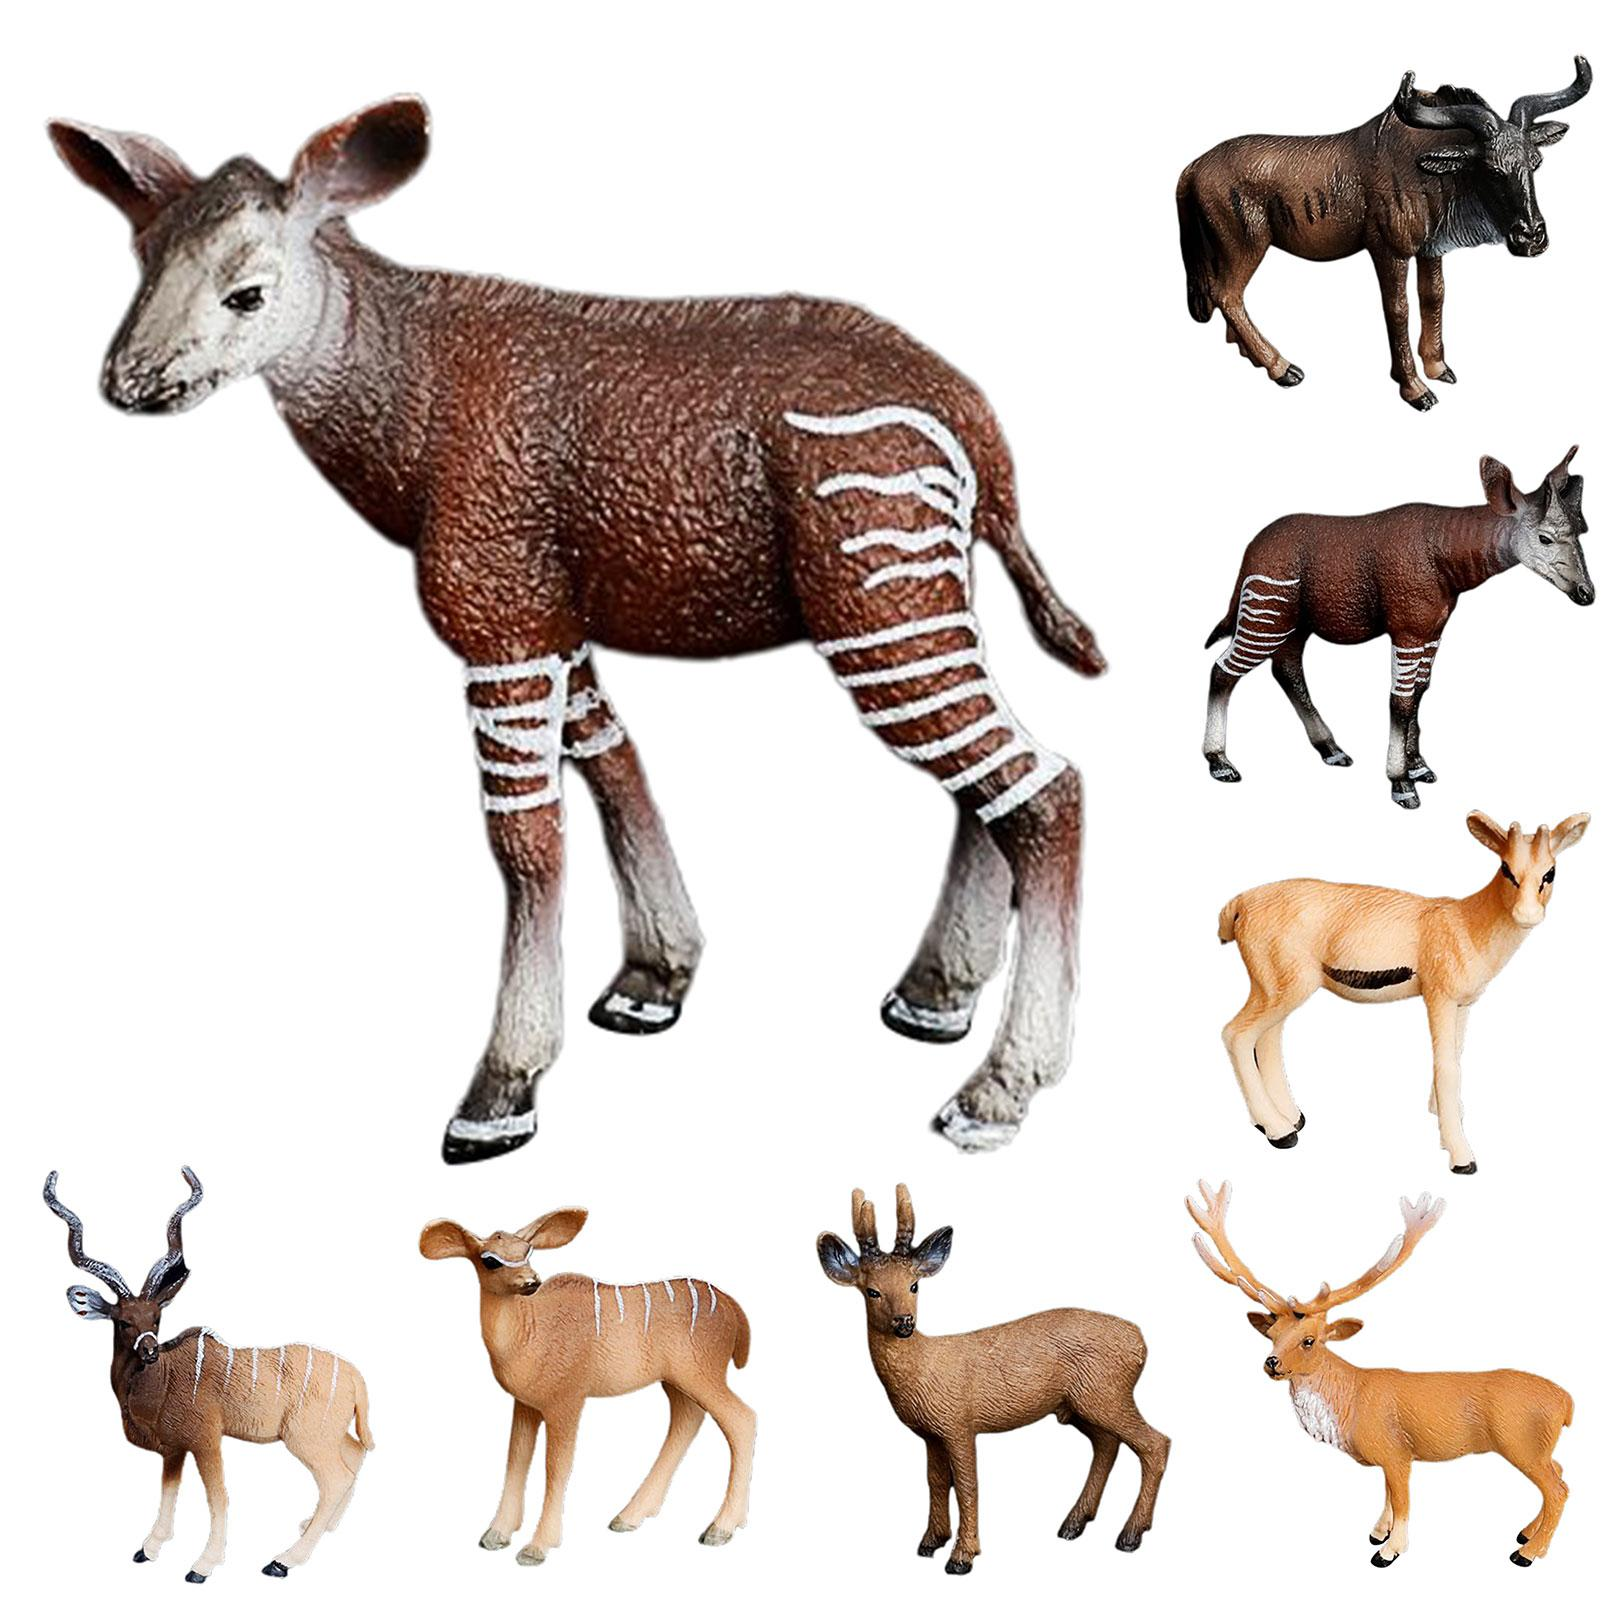 Simulation Wild Animal Deer Model Antelope Table Decor Kids Toy Collection Gift